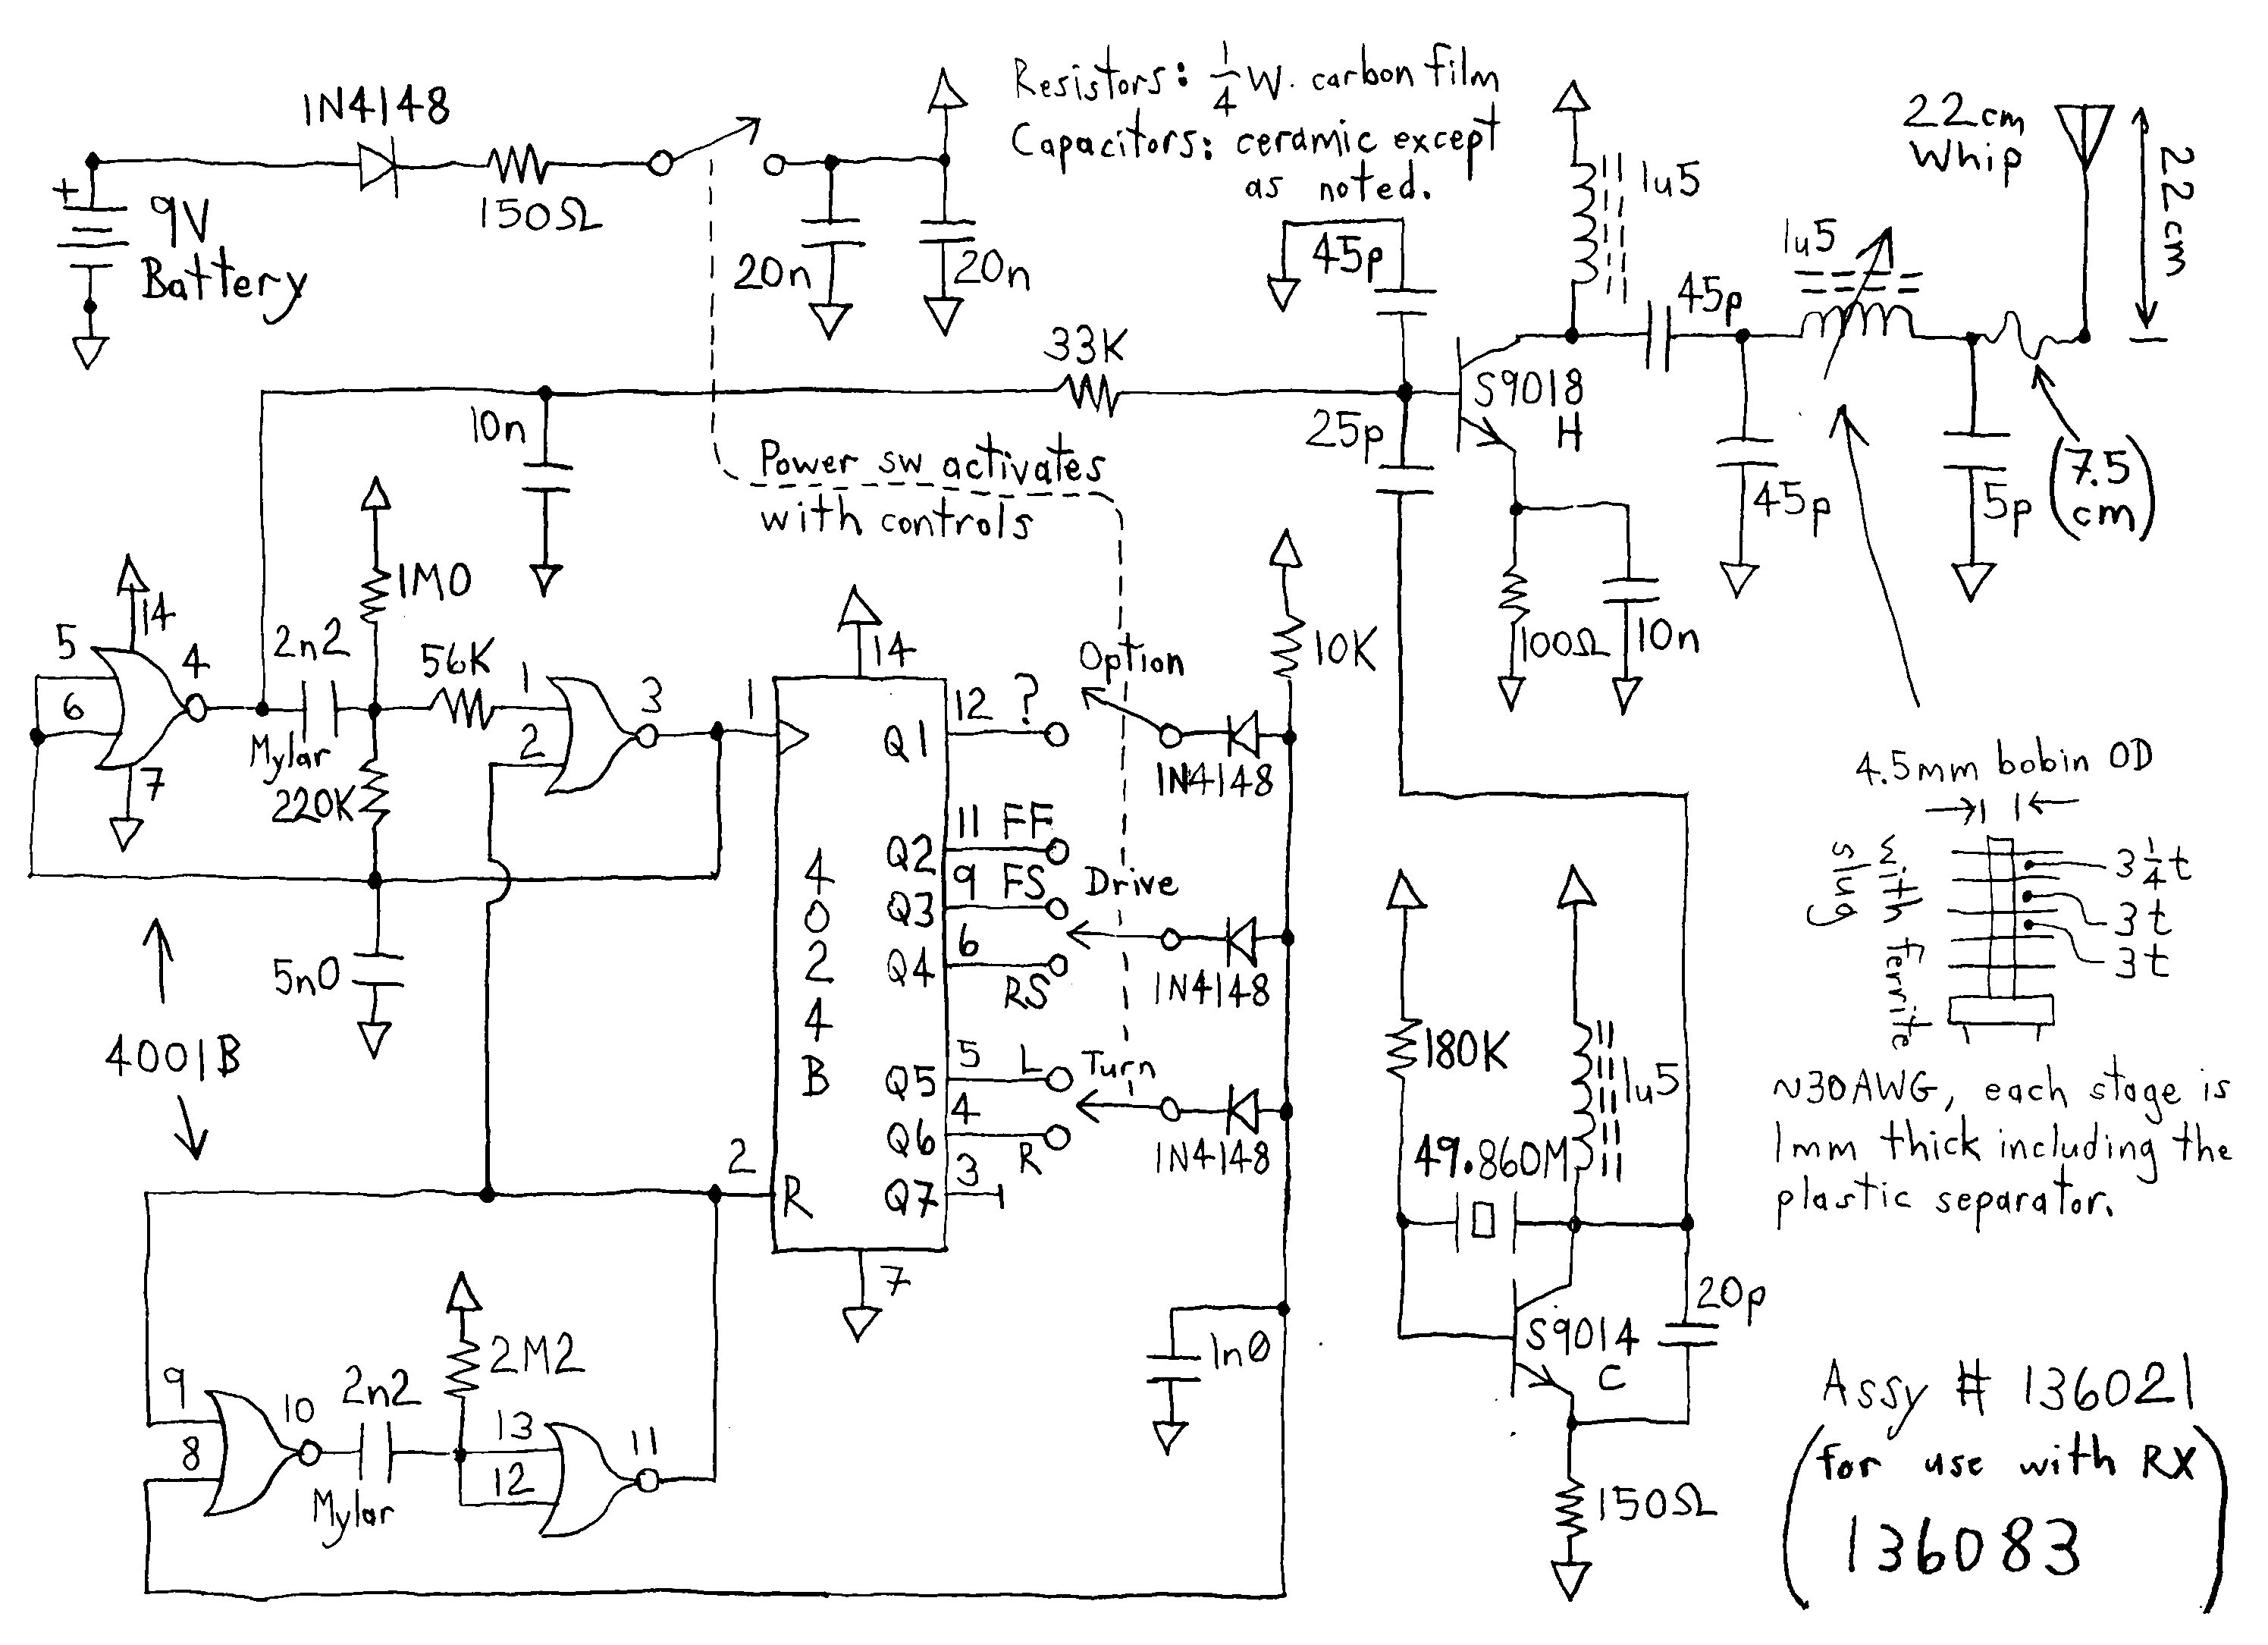 Car Remote Control Circuit Diagram Electrical Wiring Diagrams Tv Shutdown Remotecontrolcircuit Toy My Schematic